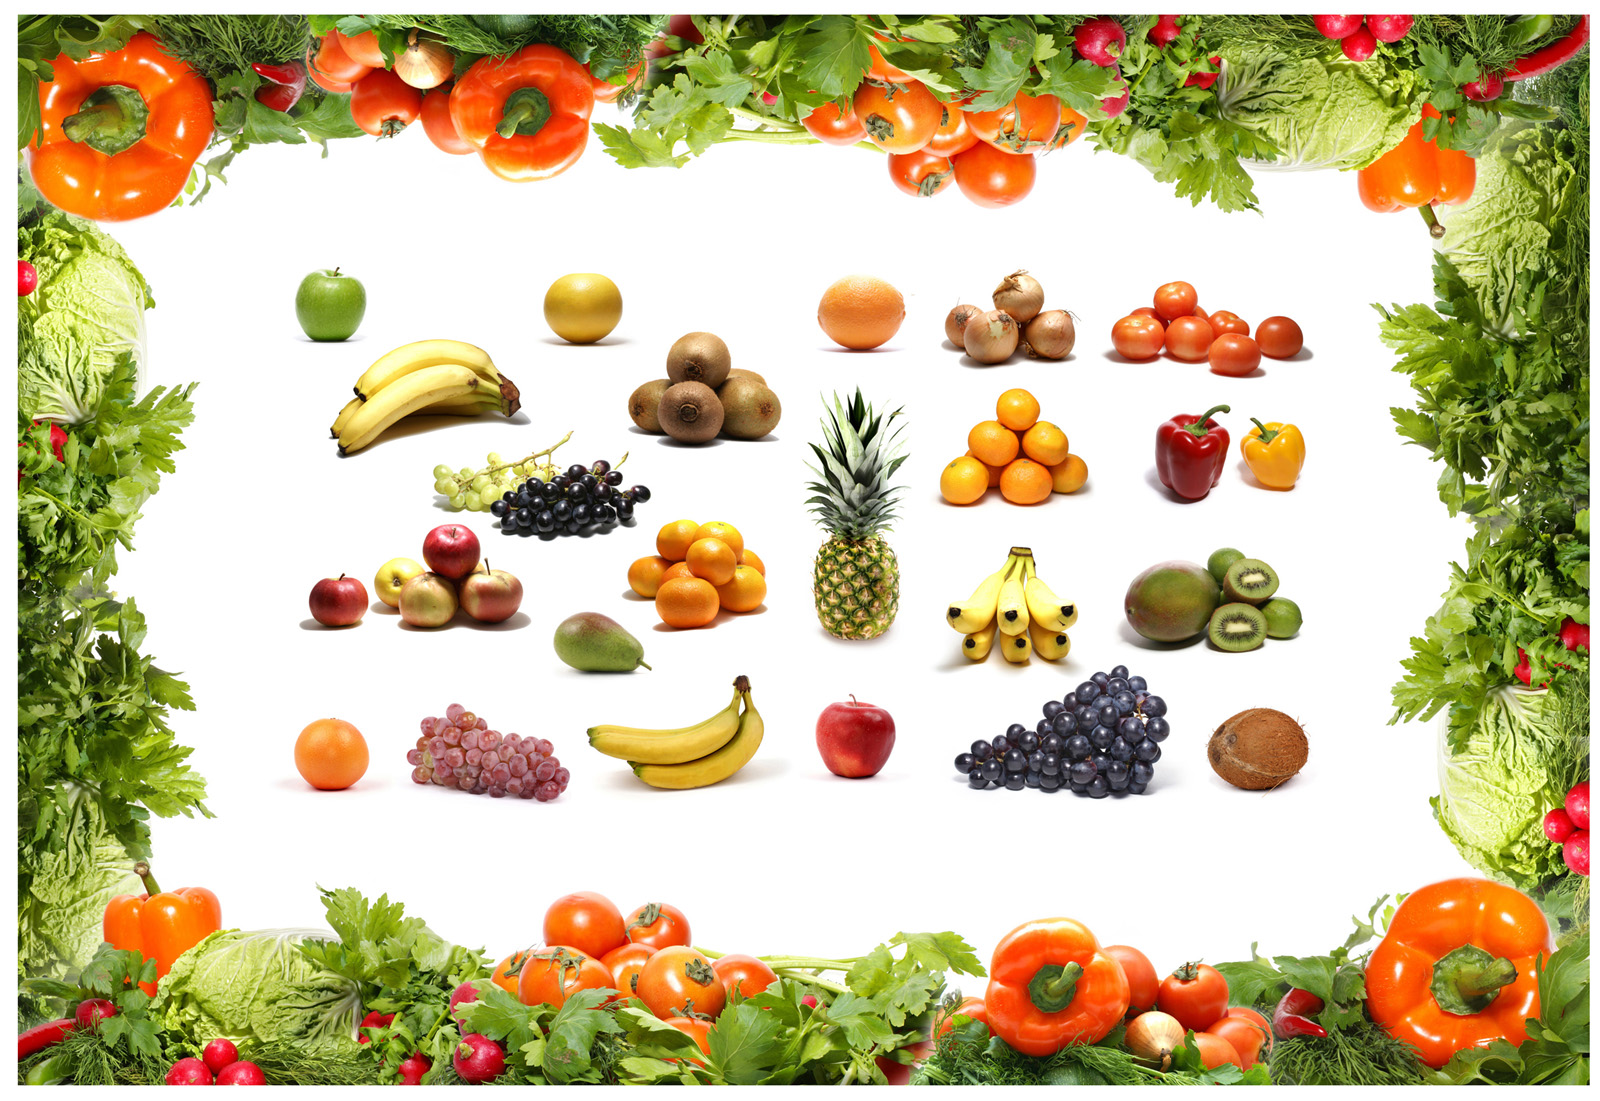 Fruits and vegetables 26109